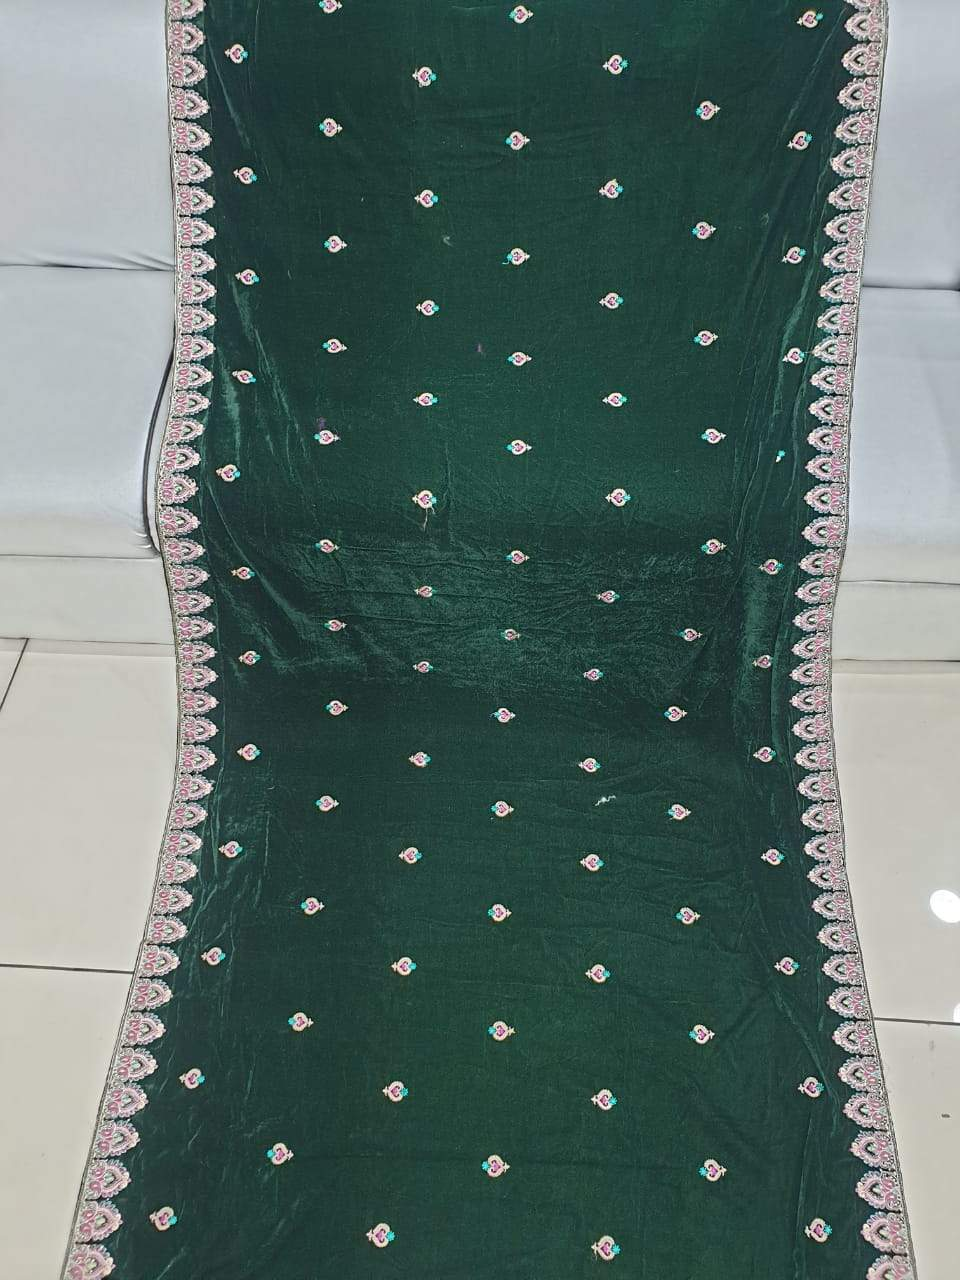 Design By Amina Velvet Shawls With Hand Embroidery Studio By Tcs